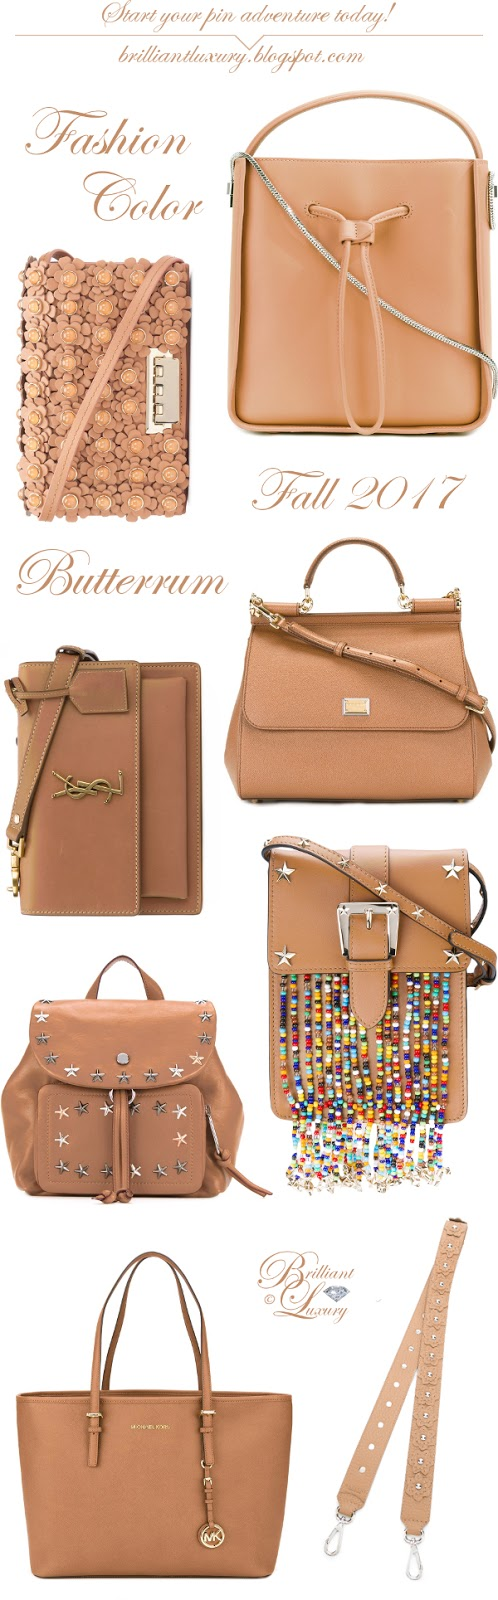 ♦ Fashion Color Fall 2017 ~ butterrum Part II